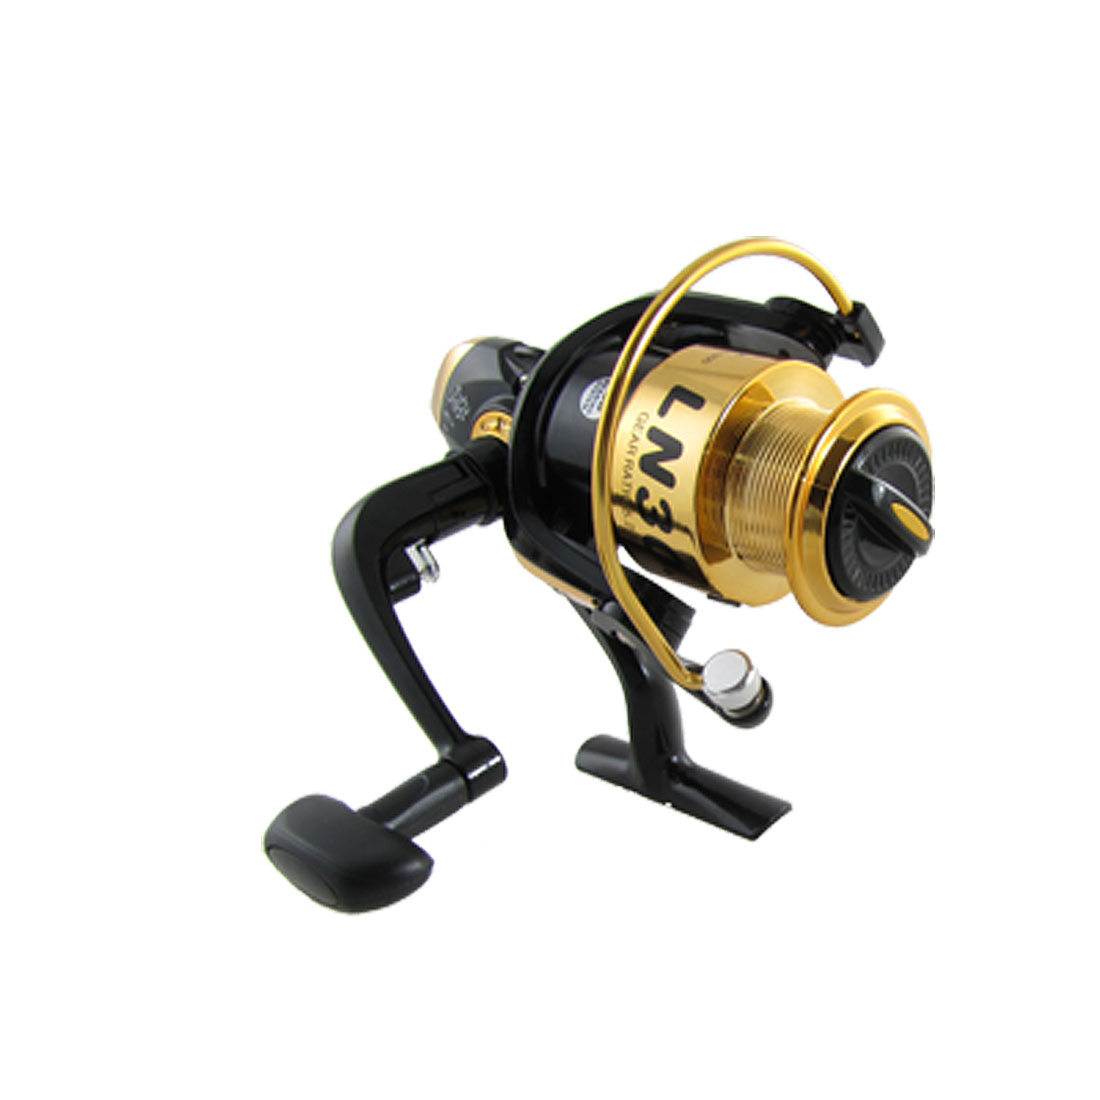 Fishing 3 Ball Bearings Spinning Reel Roller Gear Ratio 5.2:1